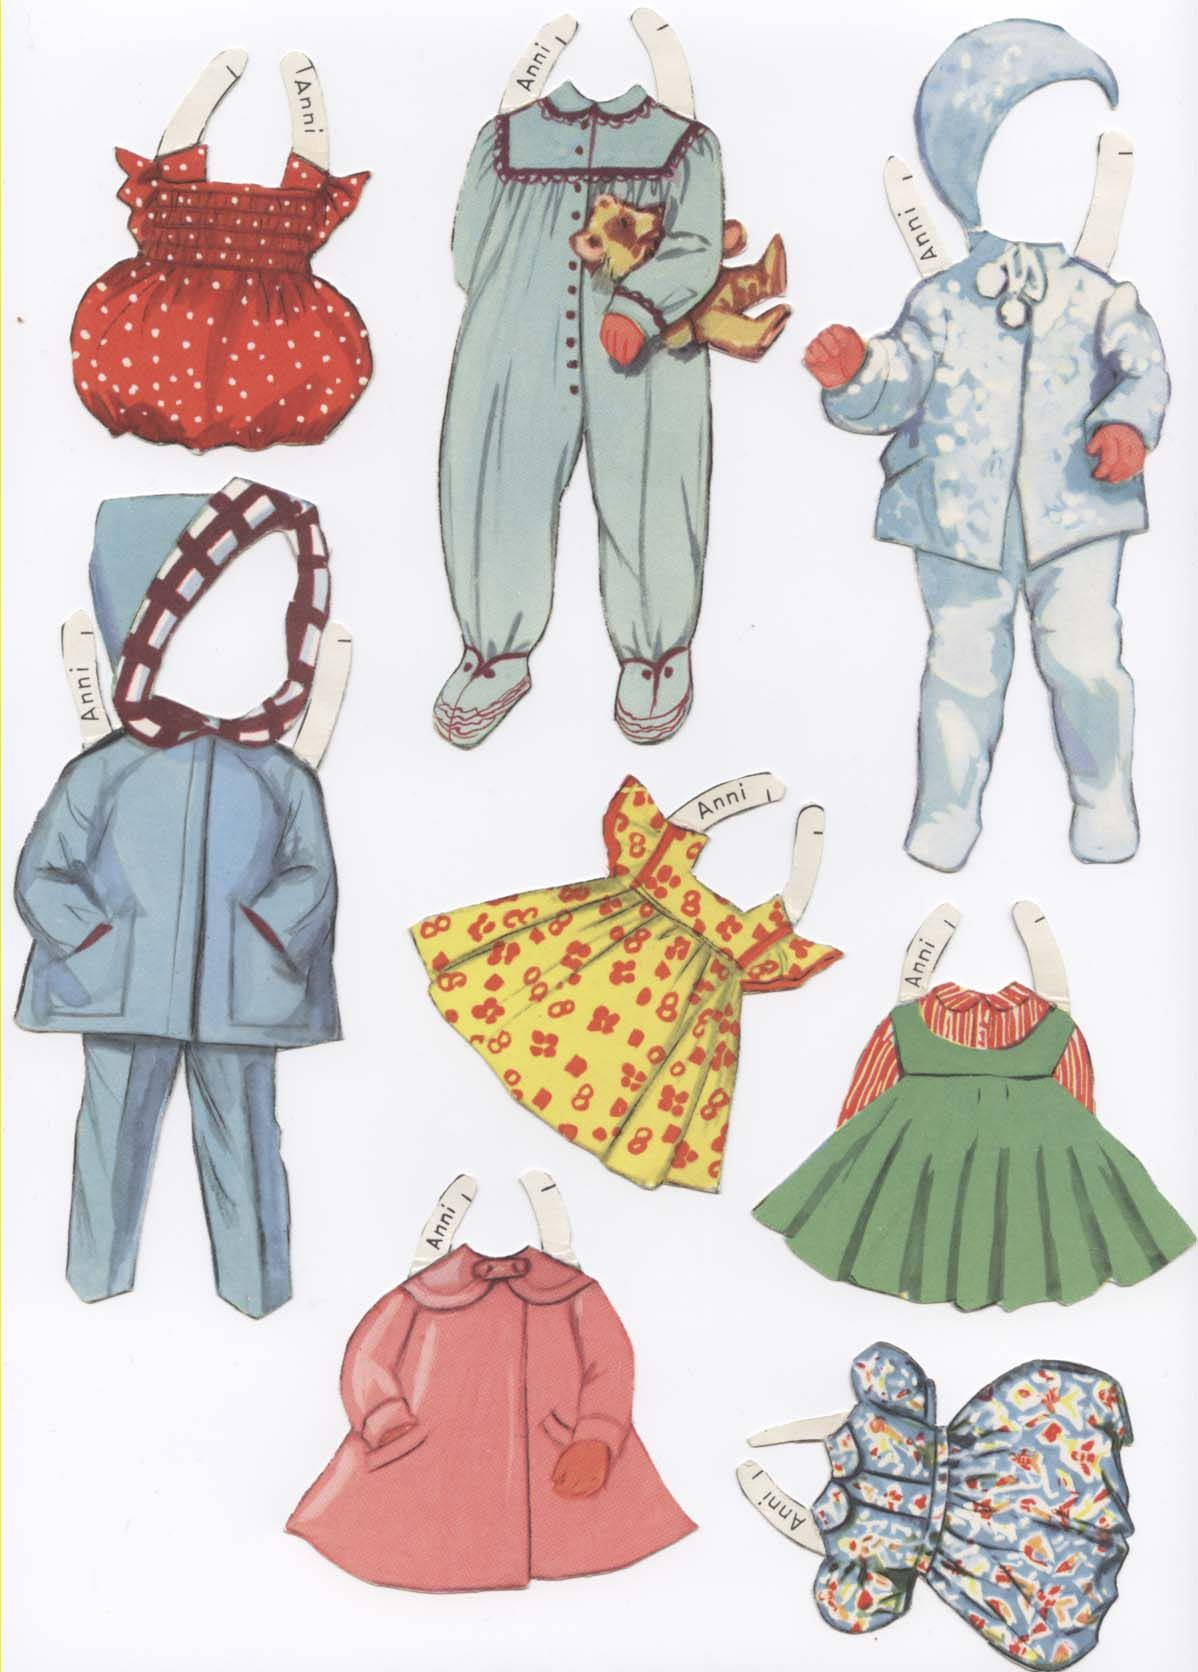 My old paperdolls - German* 1500 free paper dolls at Arielle Gabriel's The International Paper Doll Society and also free China and Japan paper dolls at The China Adventures of Arielle Gabriel *